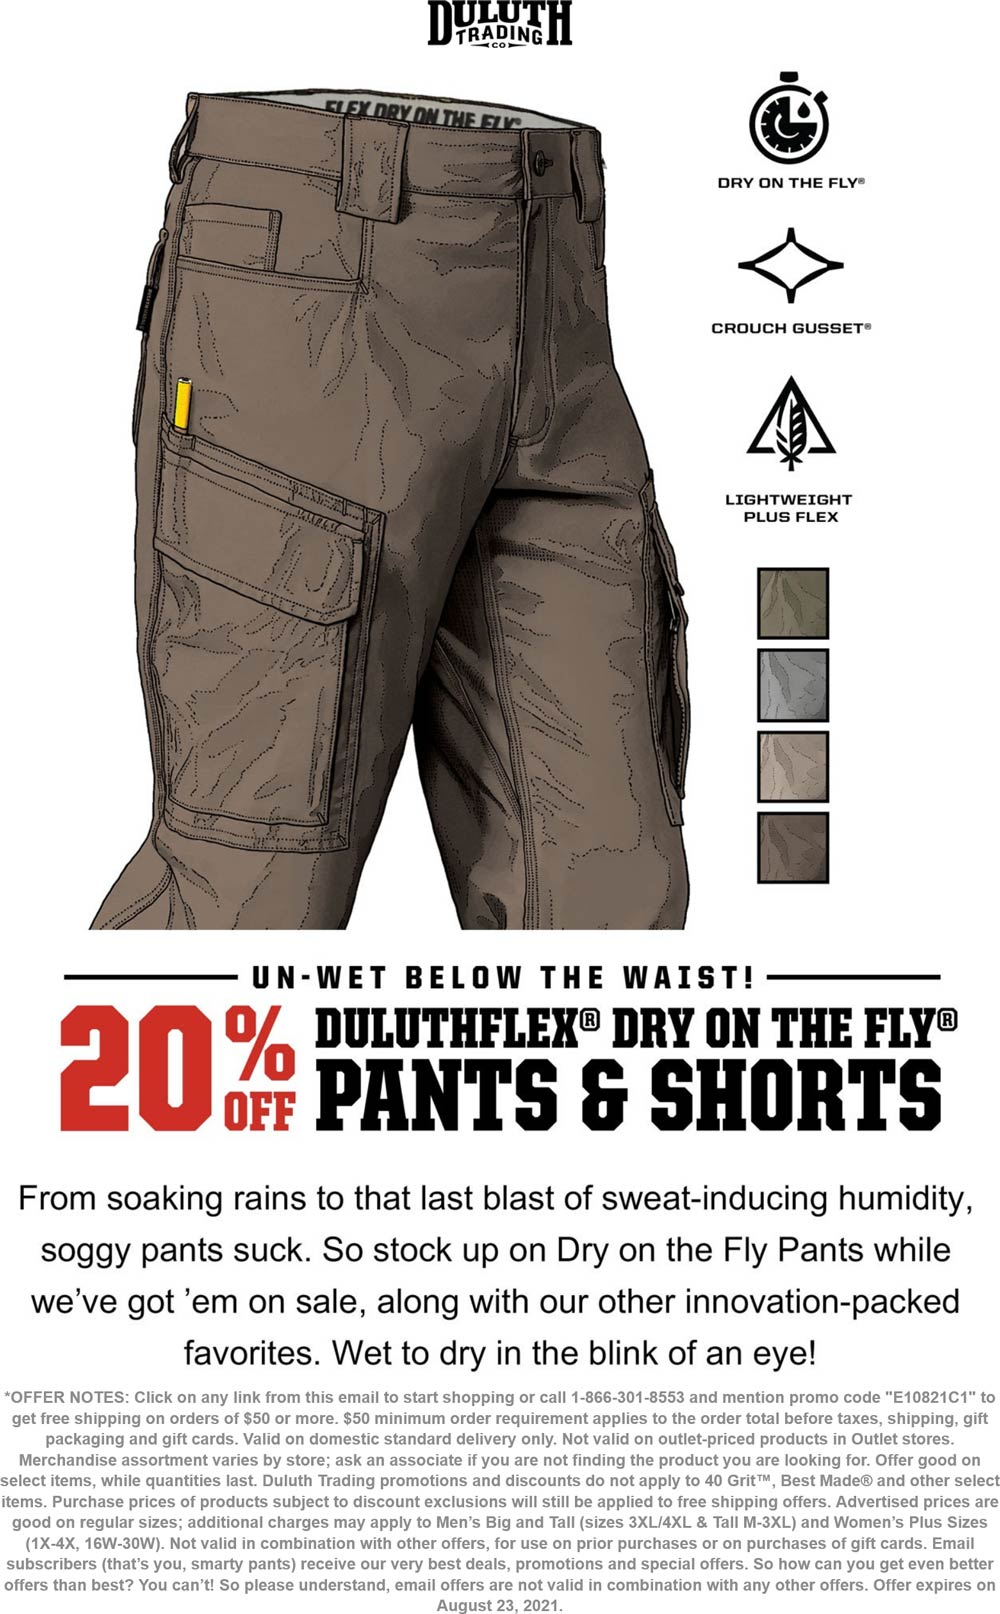 Duluth Trading Co stores Coupon  20% off dry on the fly pants & shorts at Duluth Trading Co #duluthtradingco